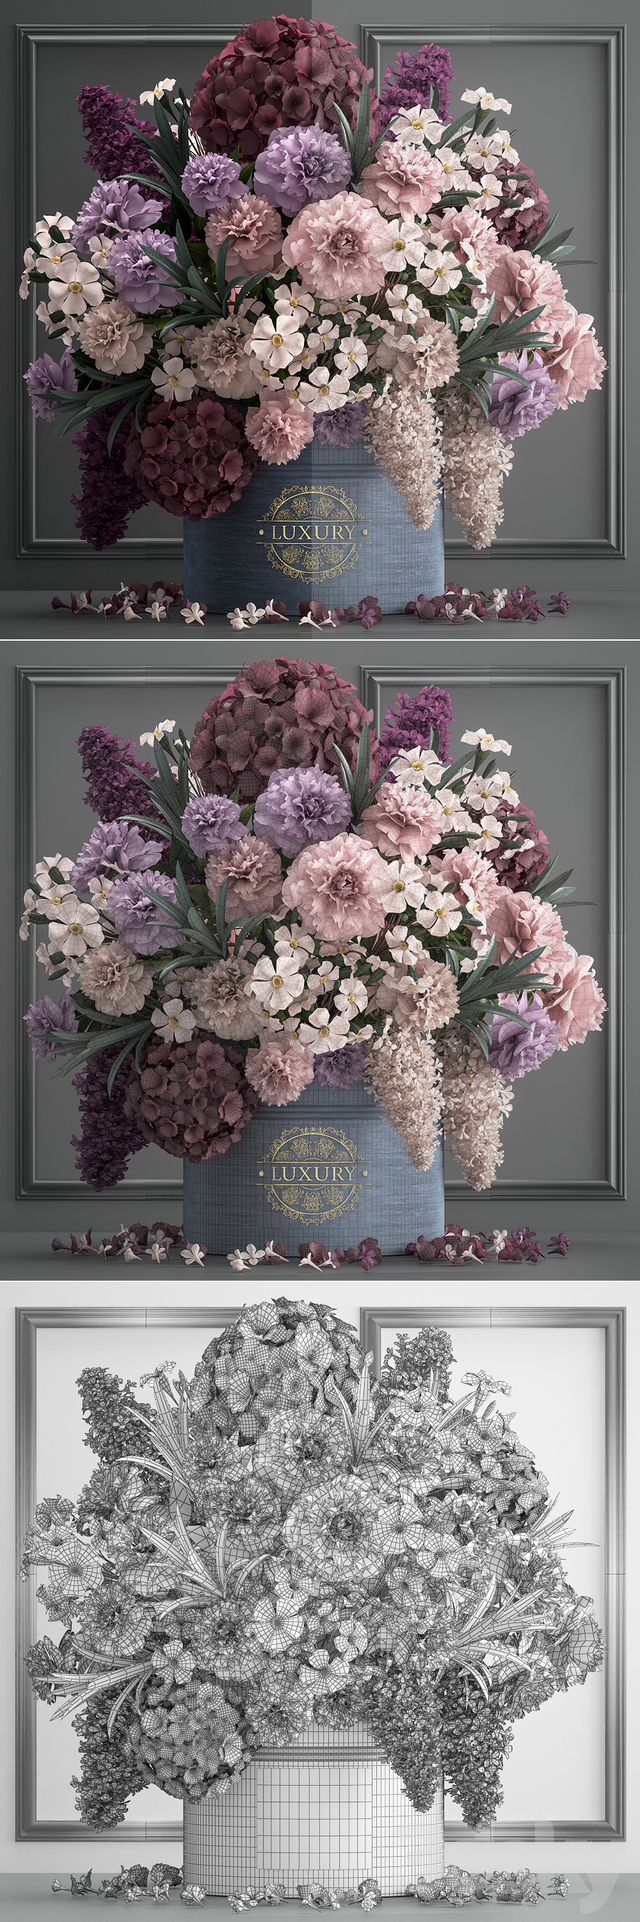 A bouquet of flowers in a gift box 87.